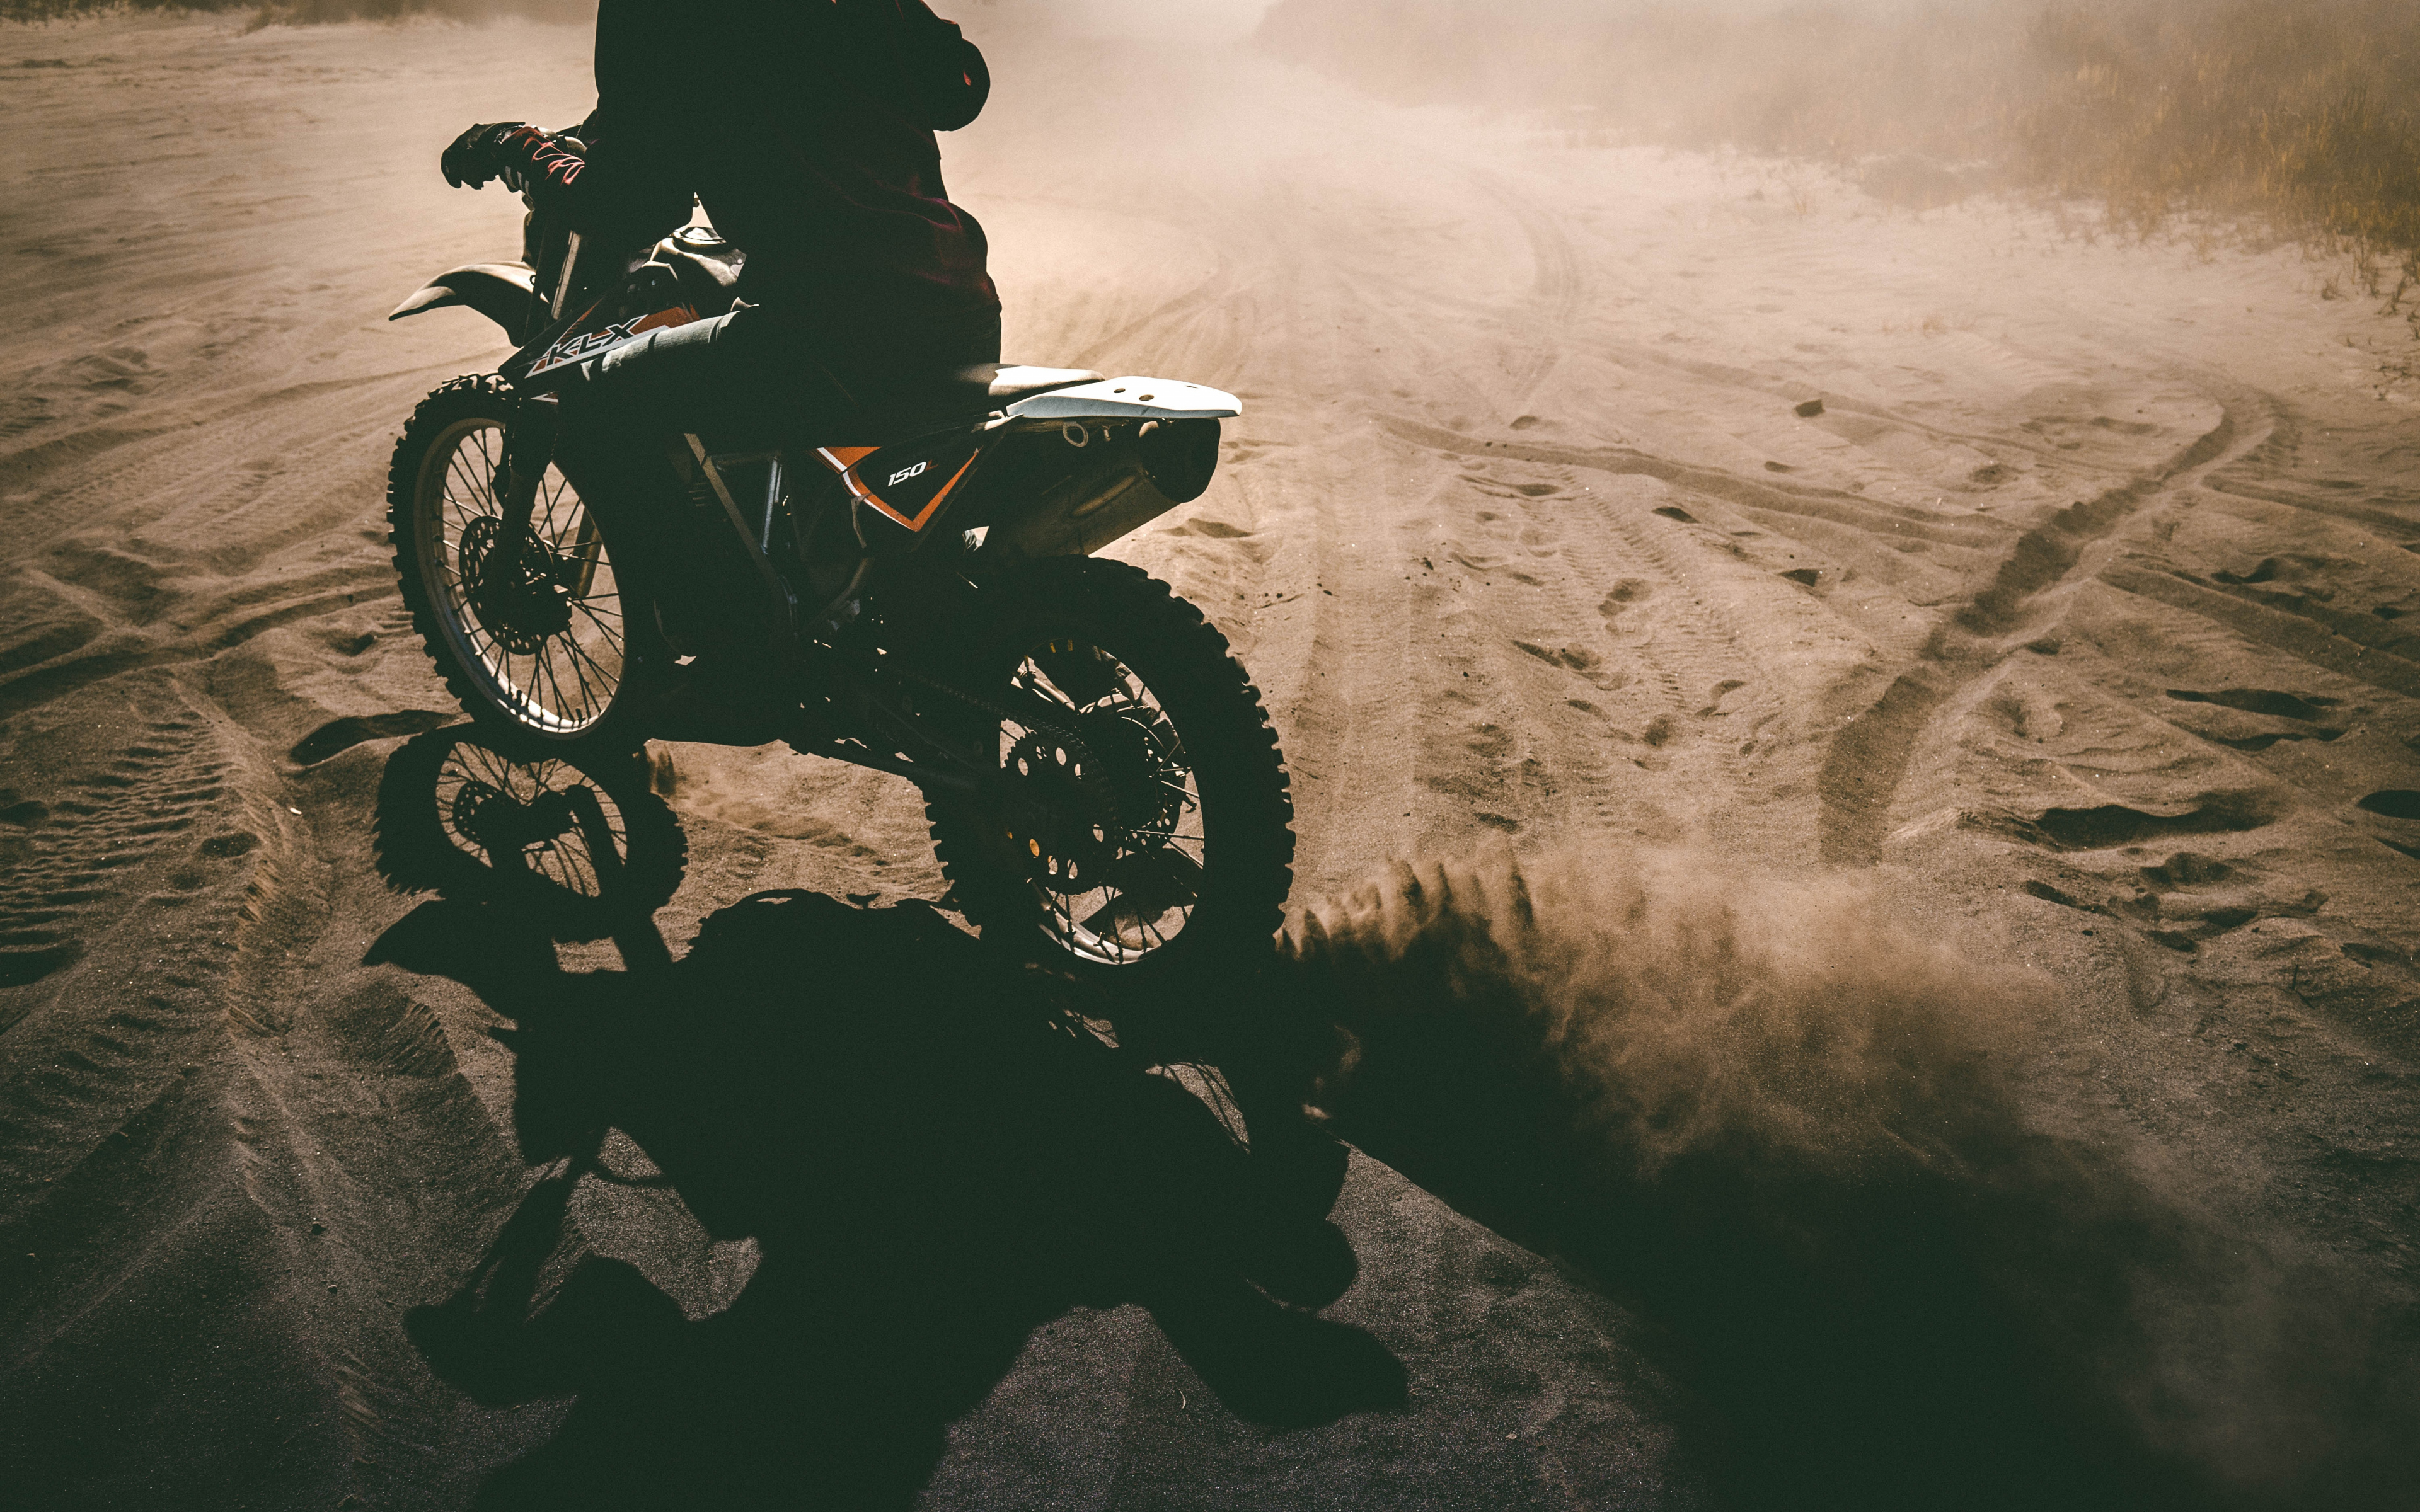 motorcyclist, motorcycle, sand